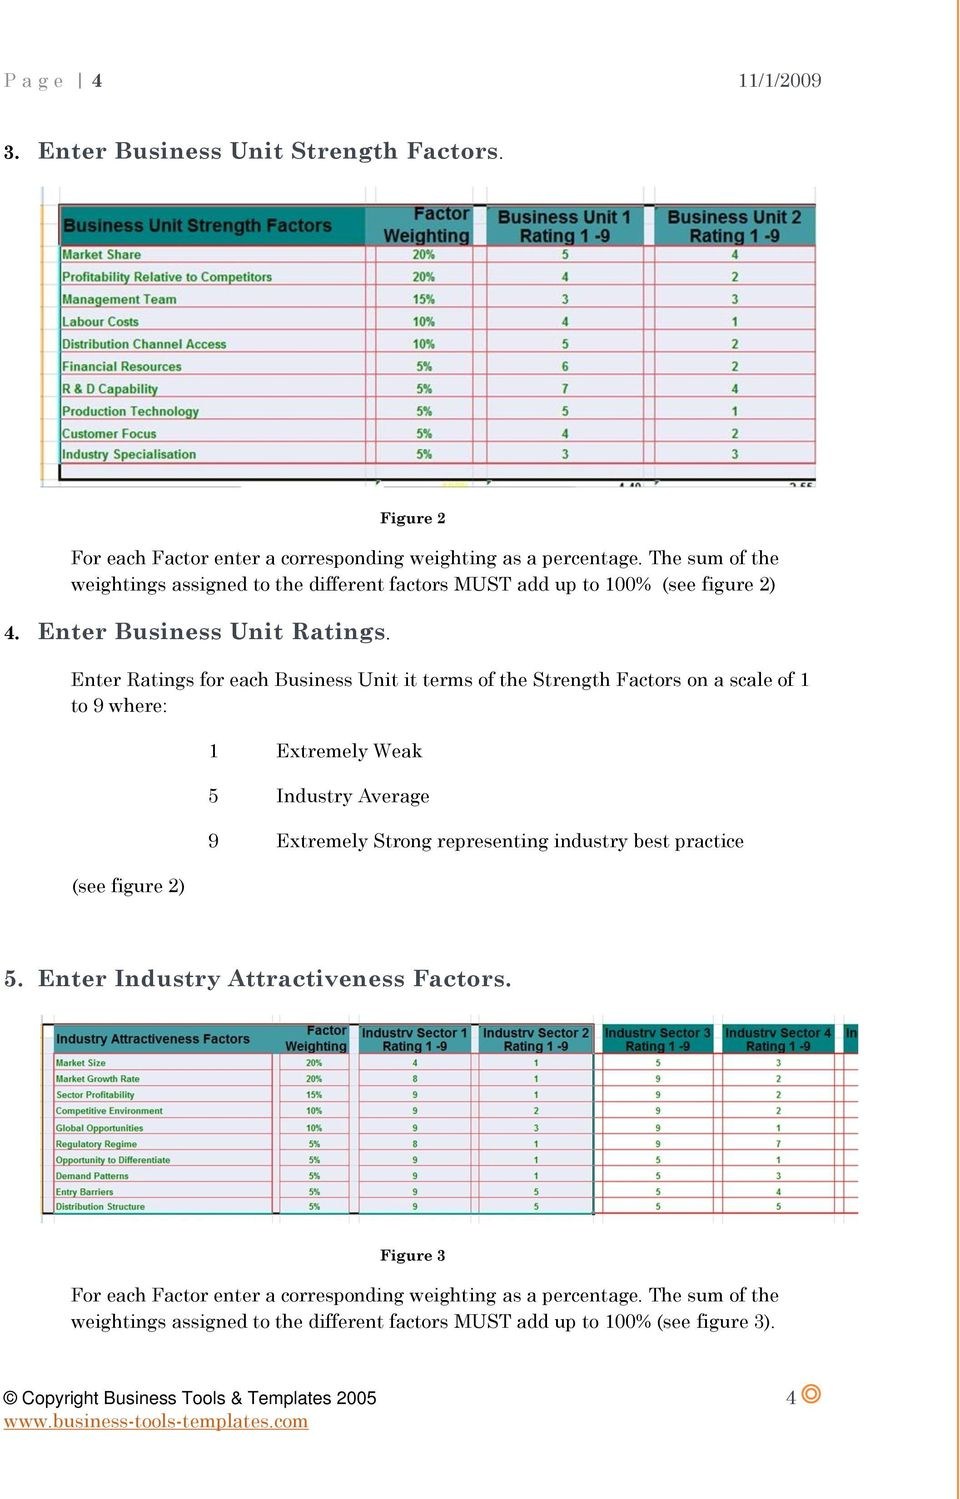 Ge mckinsey matrix ms excel ms word templates user guide pdf enter ratings for each business unit it terms of the strength factors on a scale of pronofoot35fo Gallery